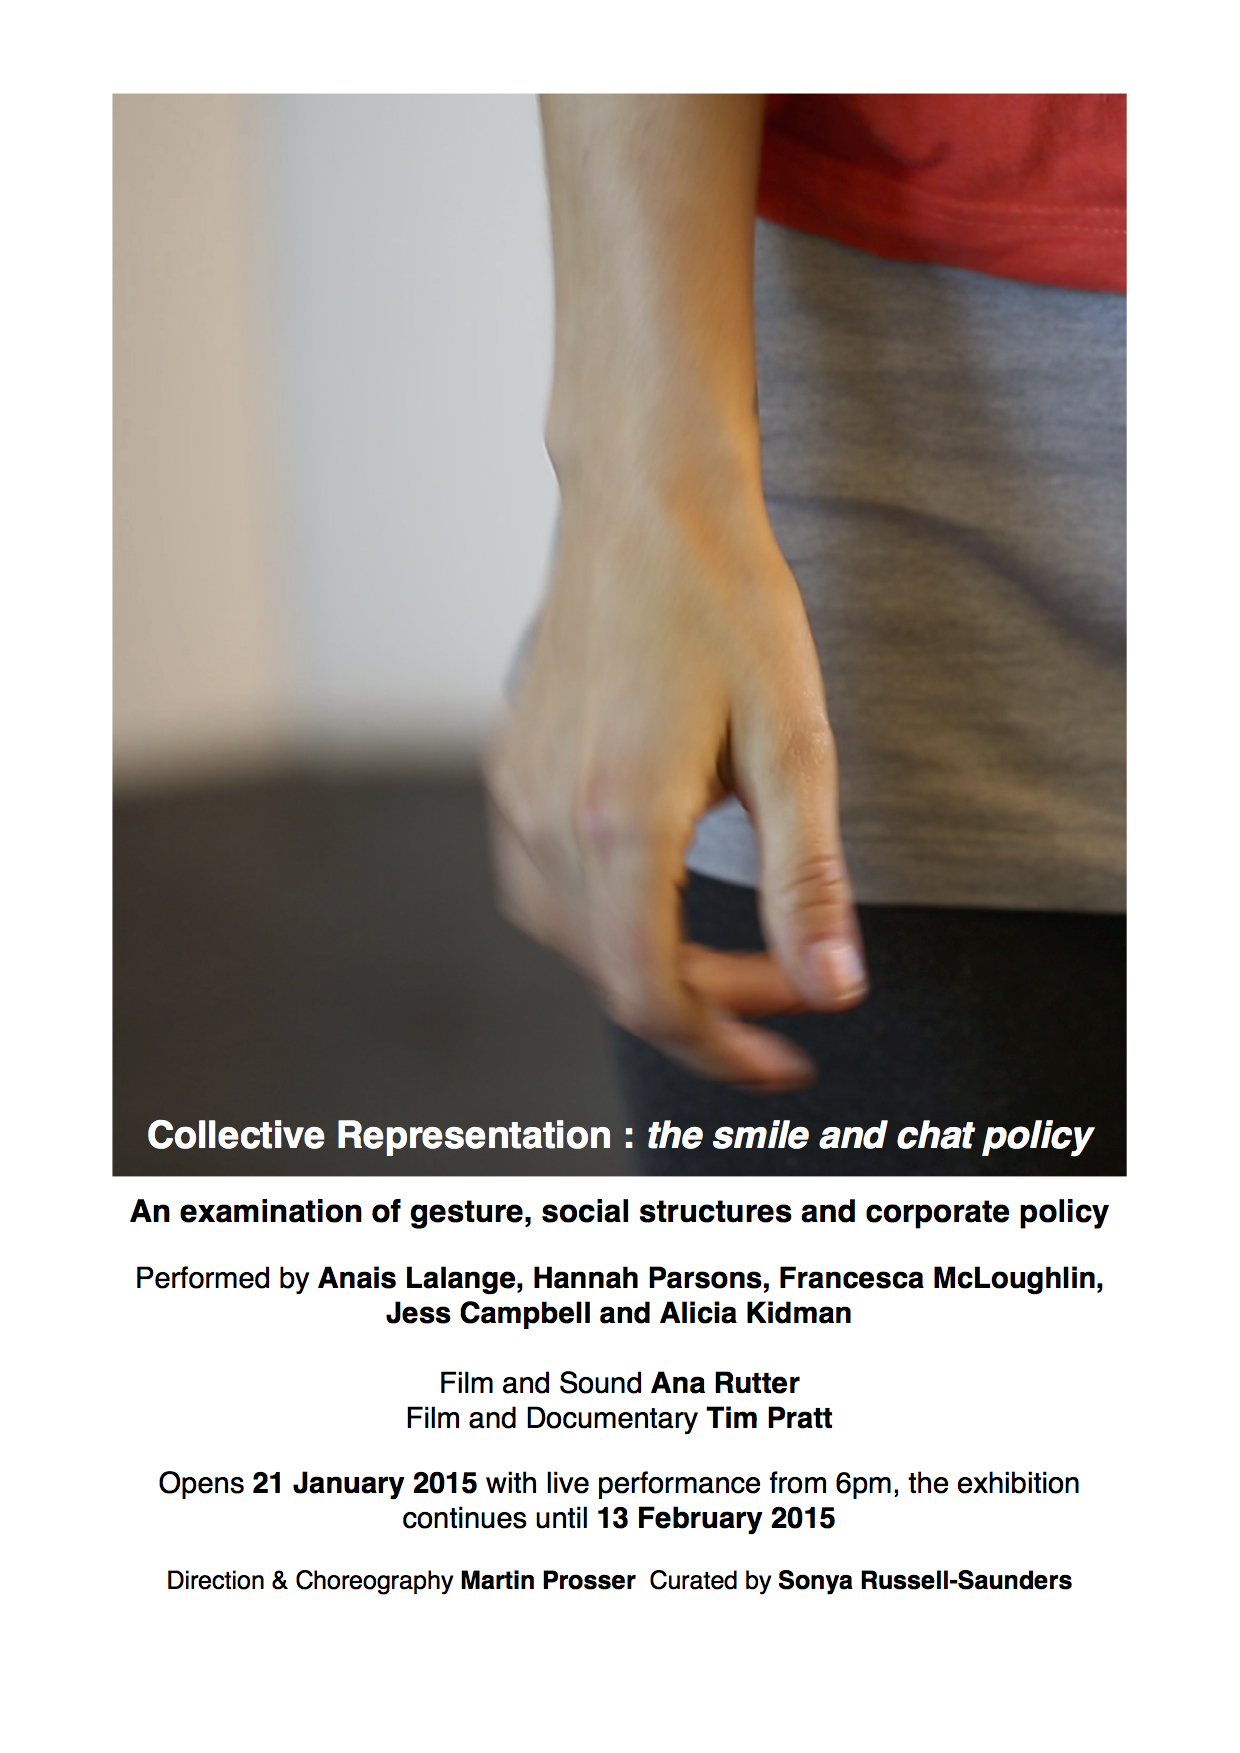 'Collective Representation: the smile and chat policy' January 2015